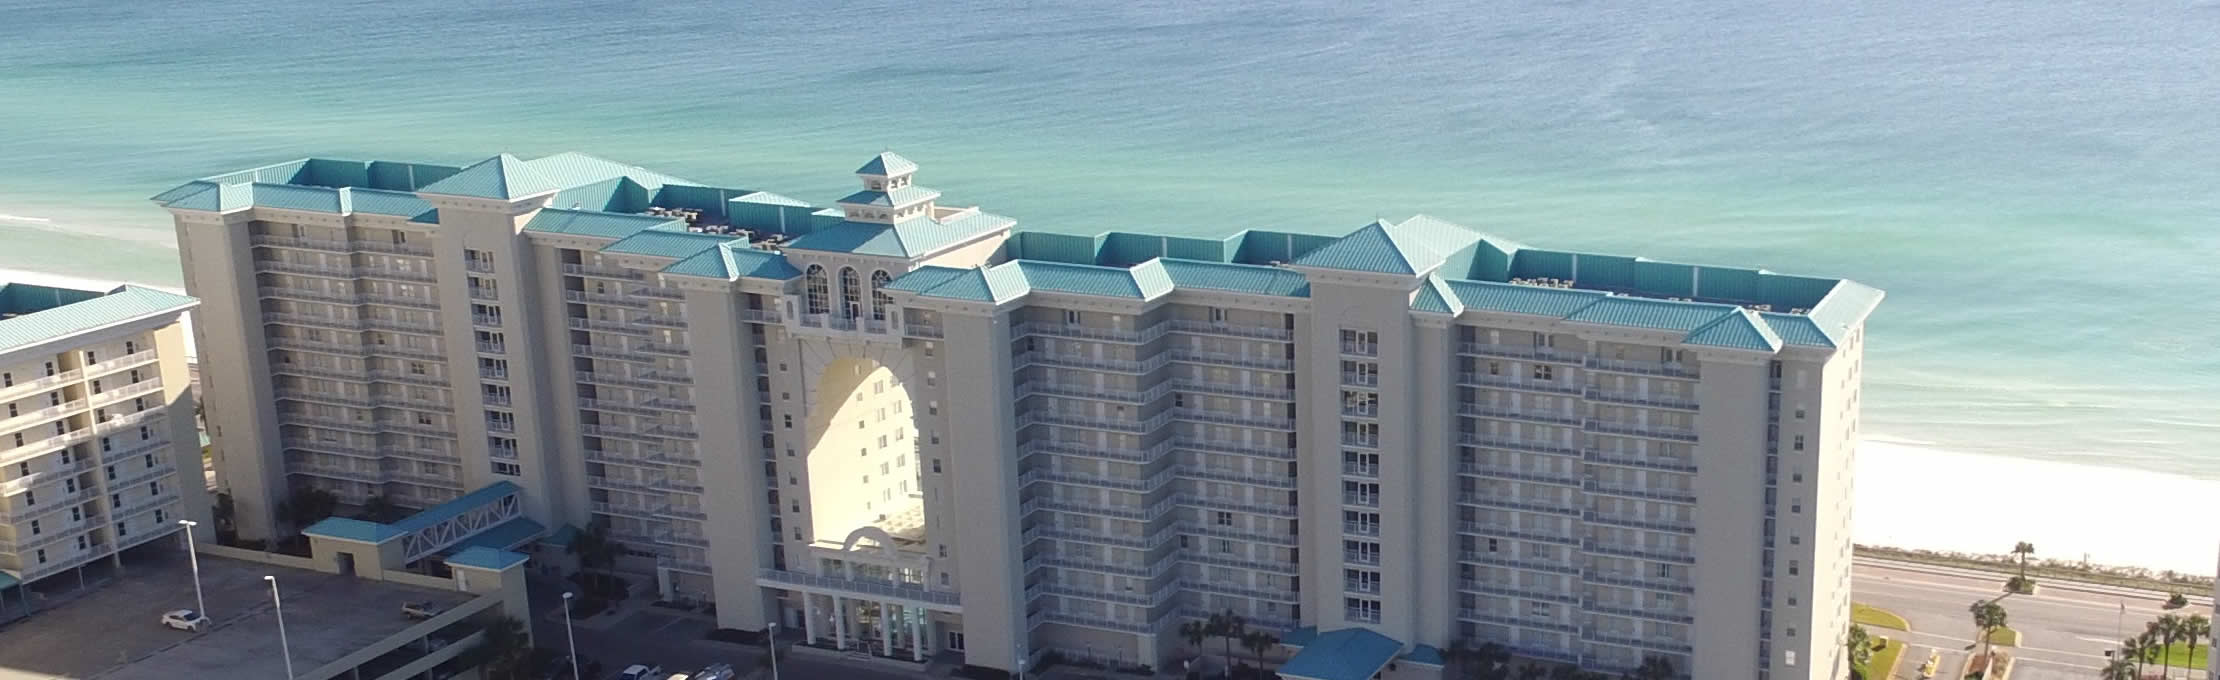 Destin Vacation Resort